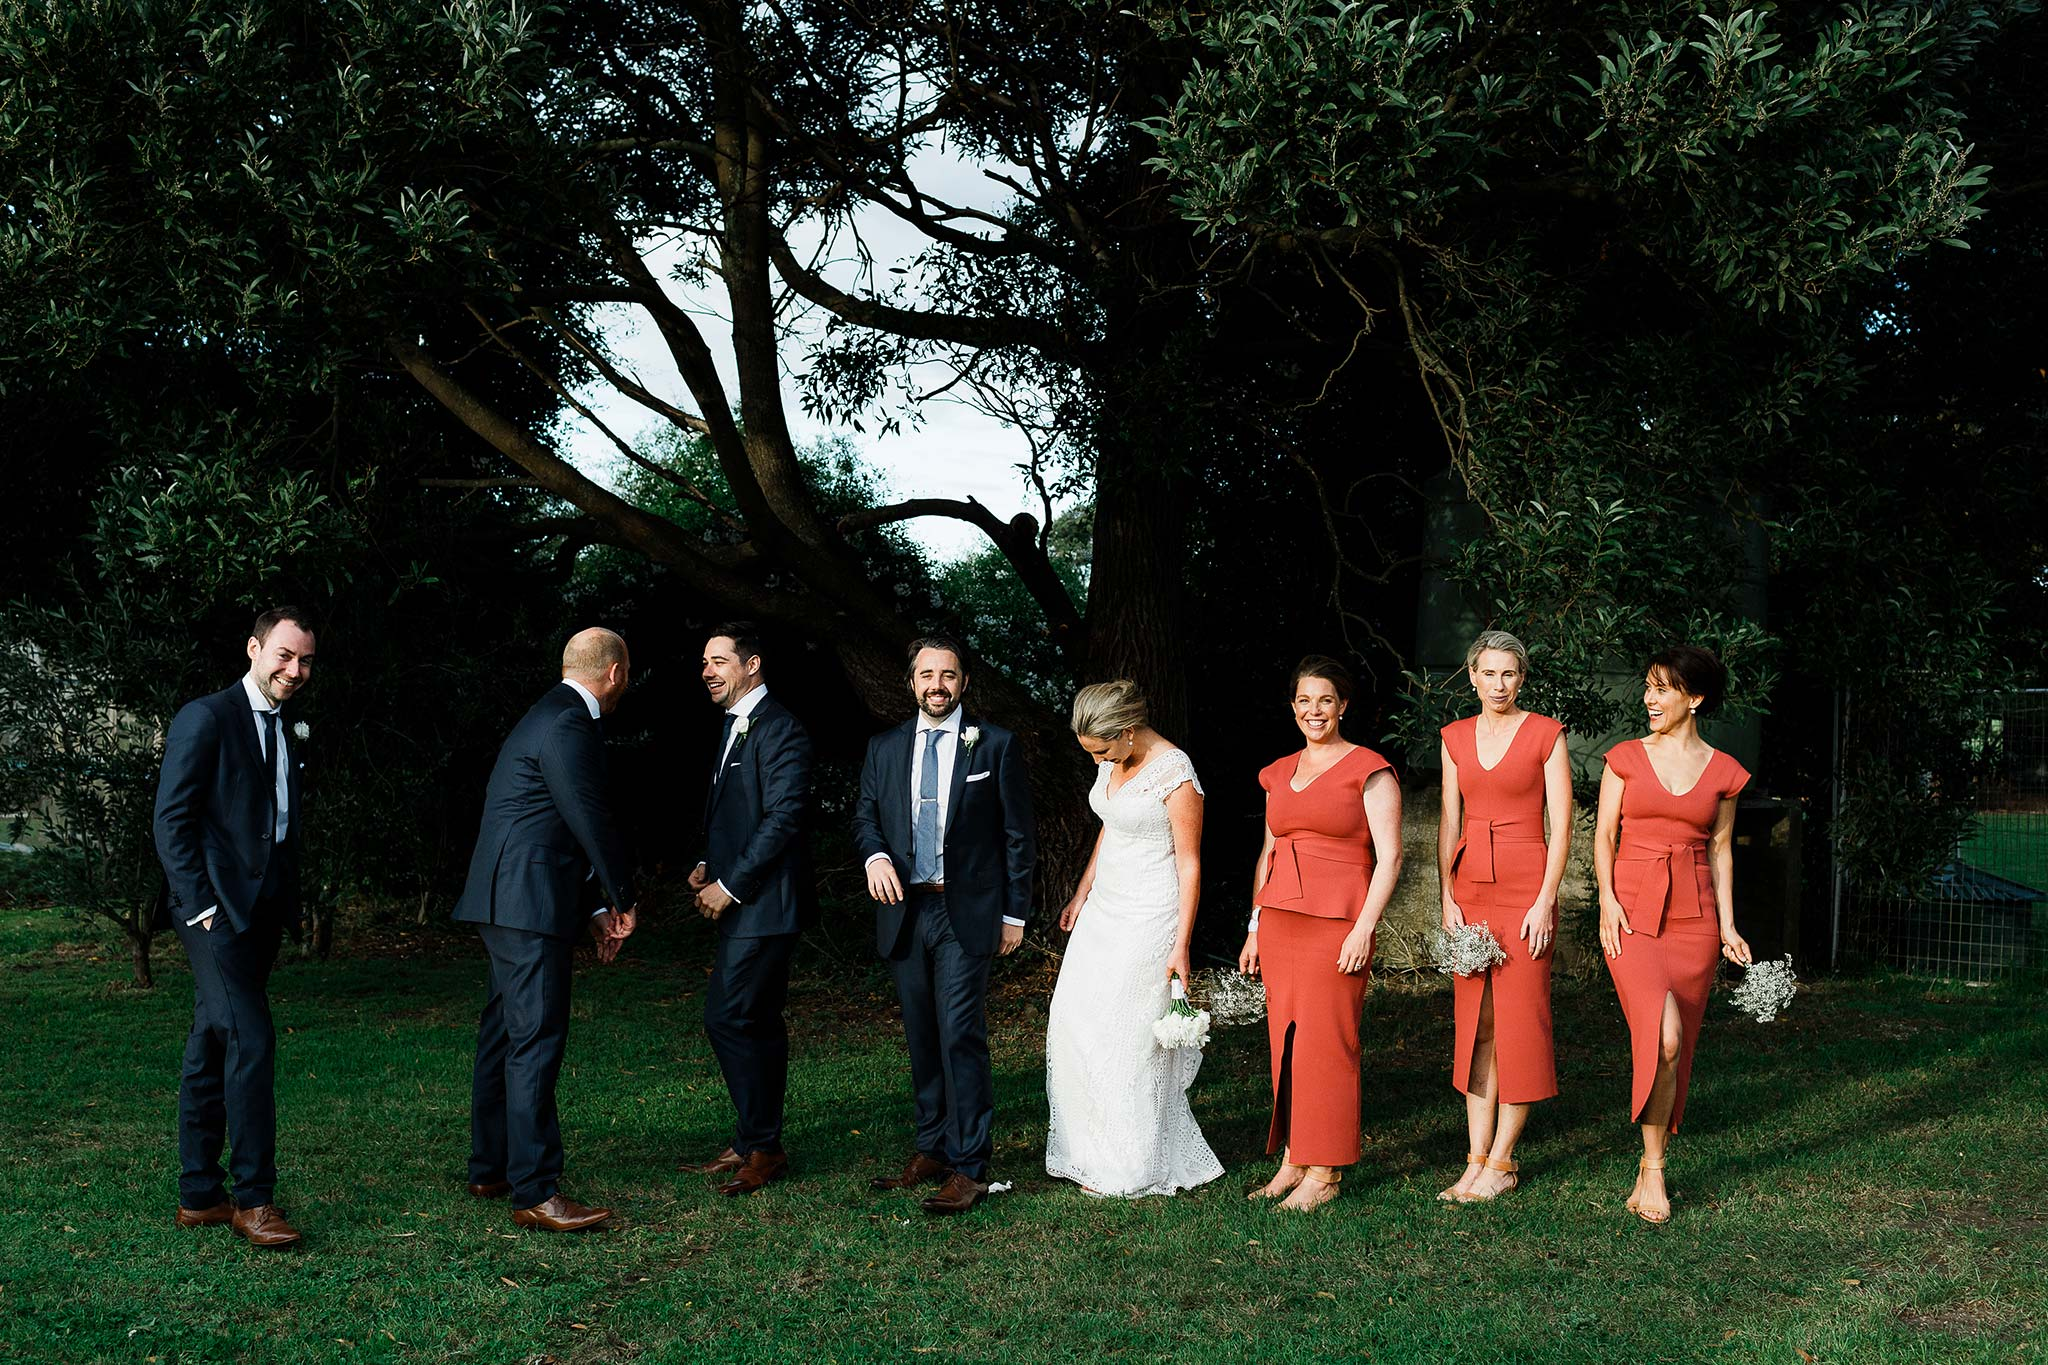 Tasmania-Davenport-Farm-Wedding-group-portrait